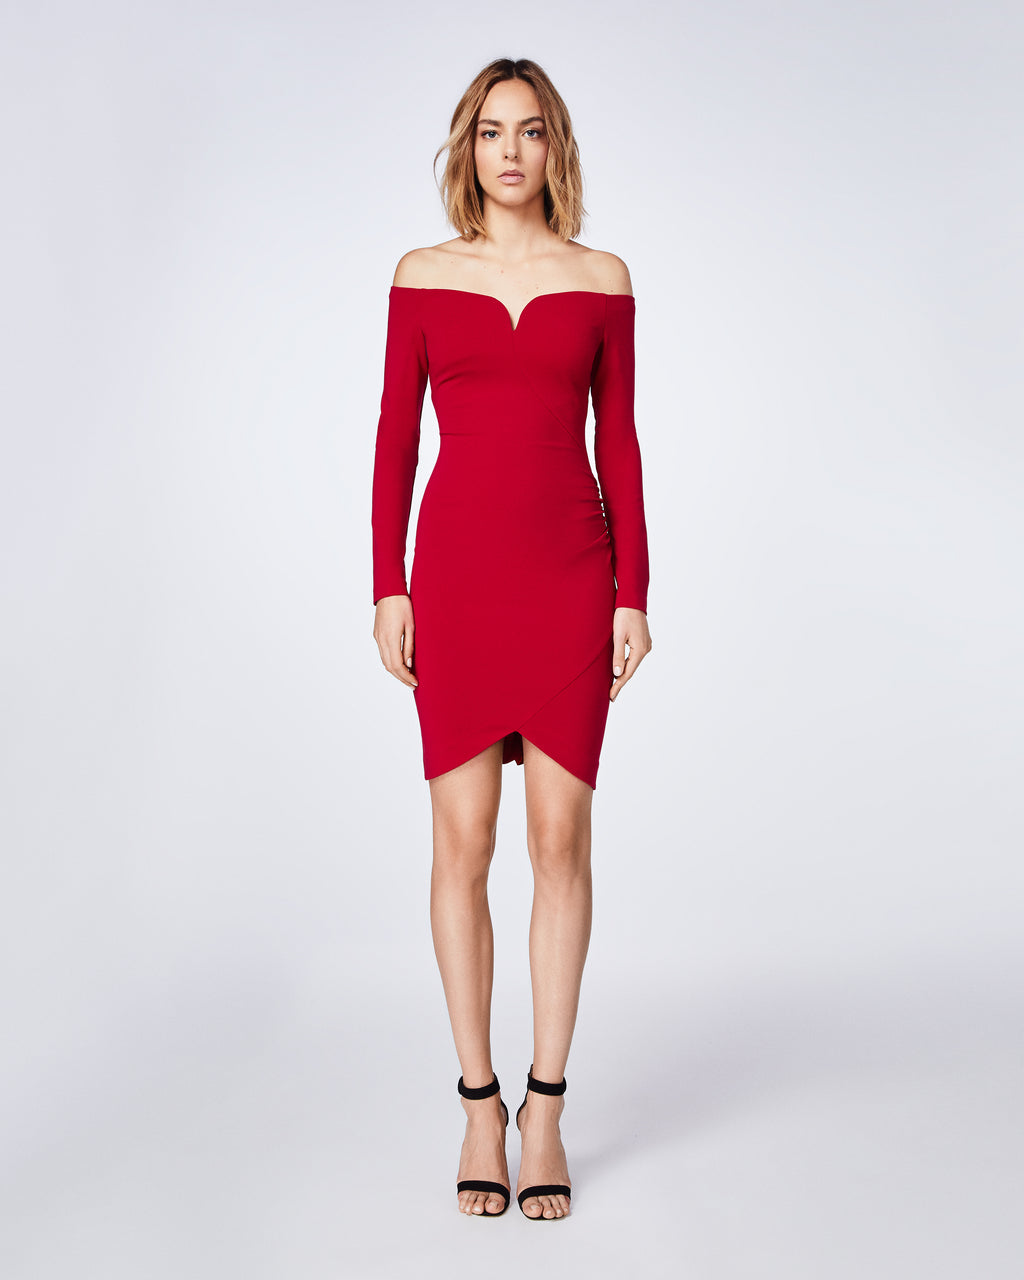 d641ee5ae1a5 Jersey Off Shoulder Dress – NicoleMiller.com